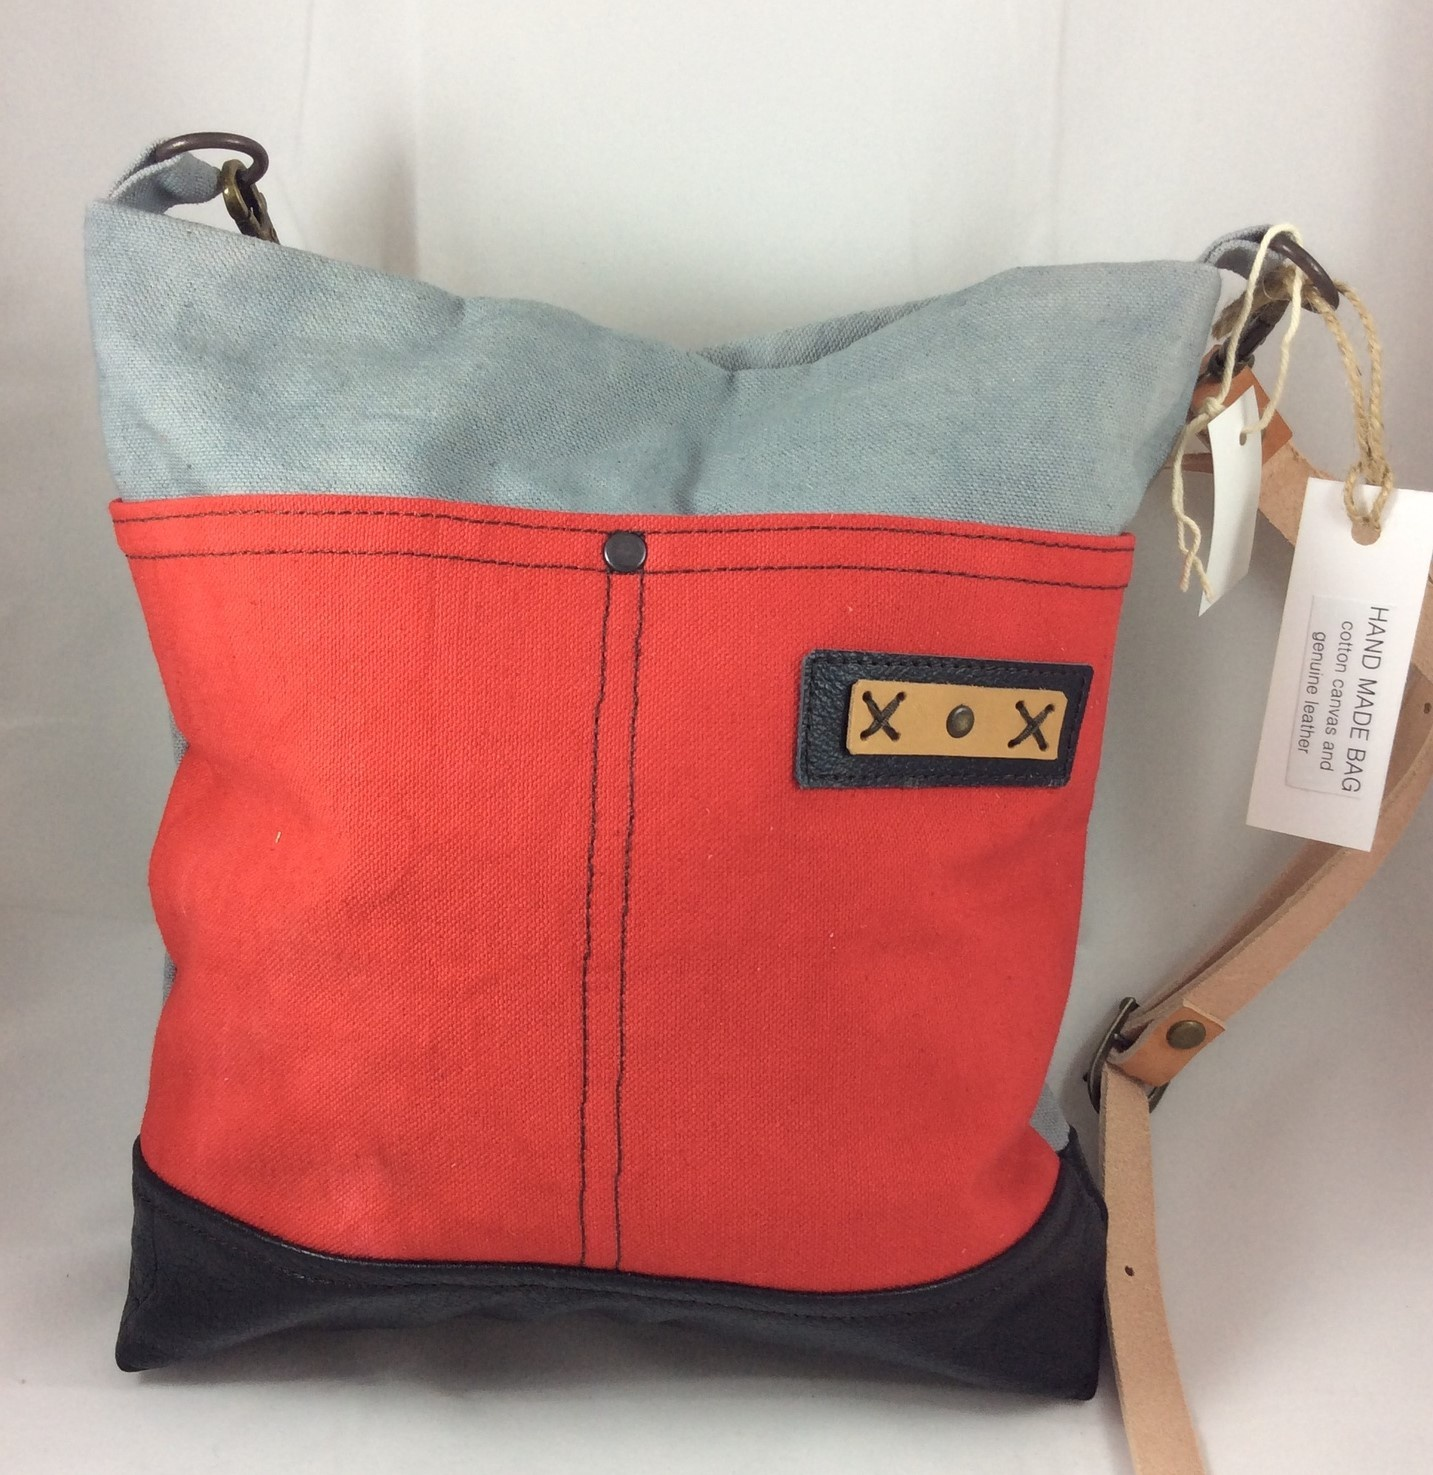 Grey, Red and Black Cross Body Tote Bag